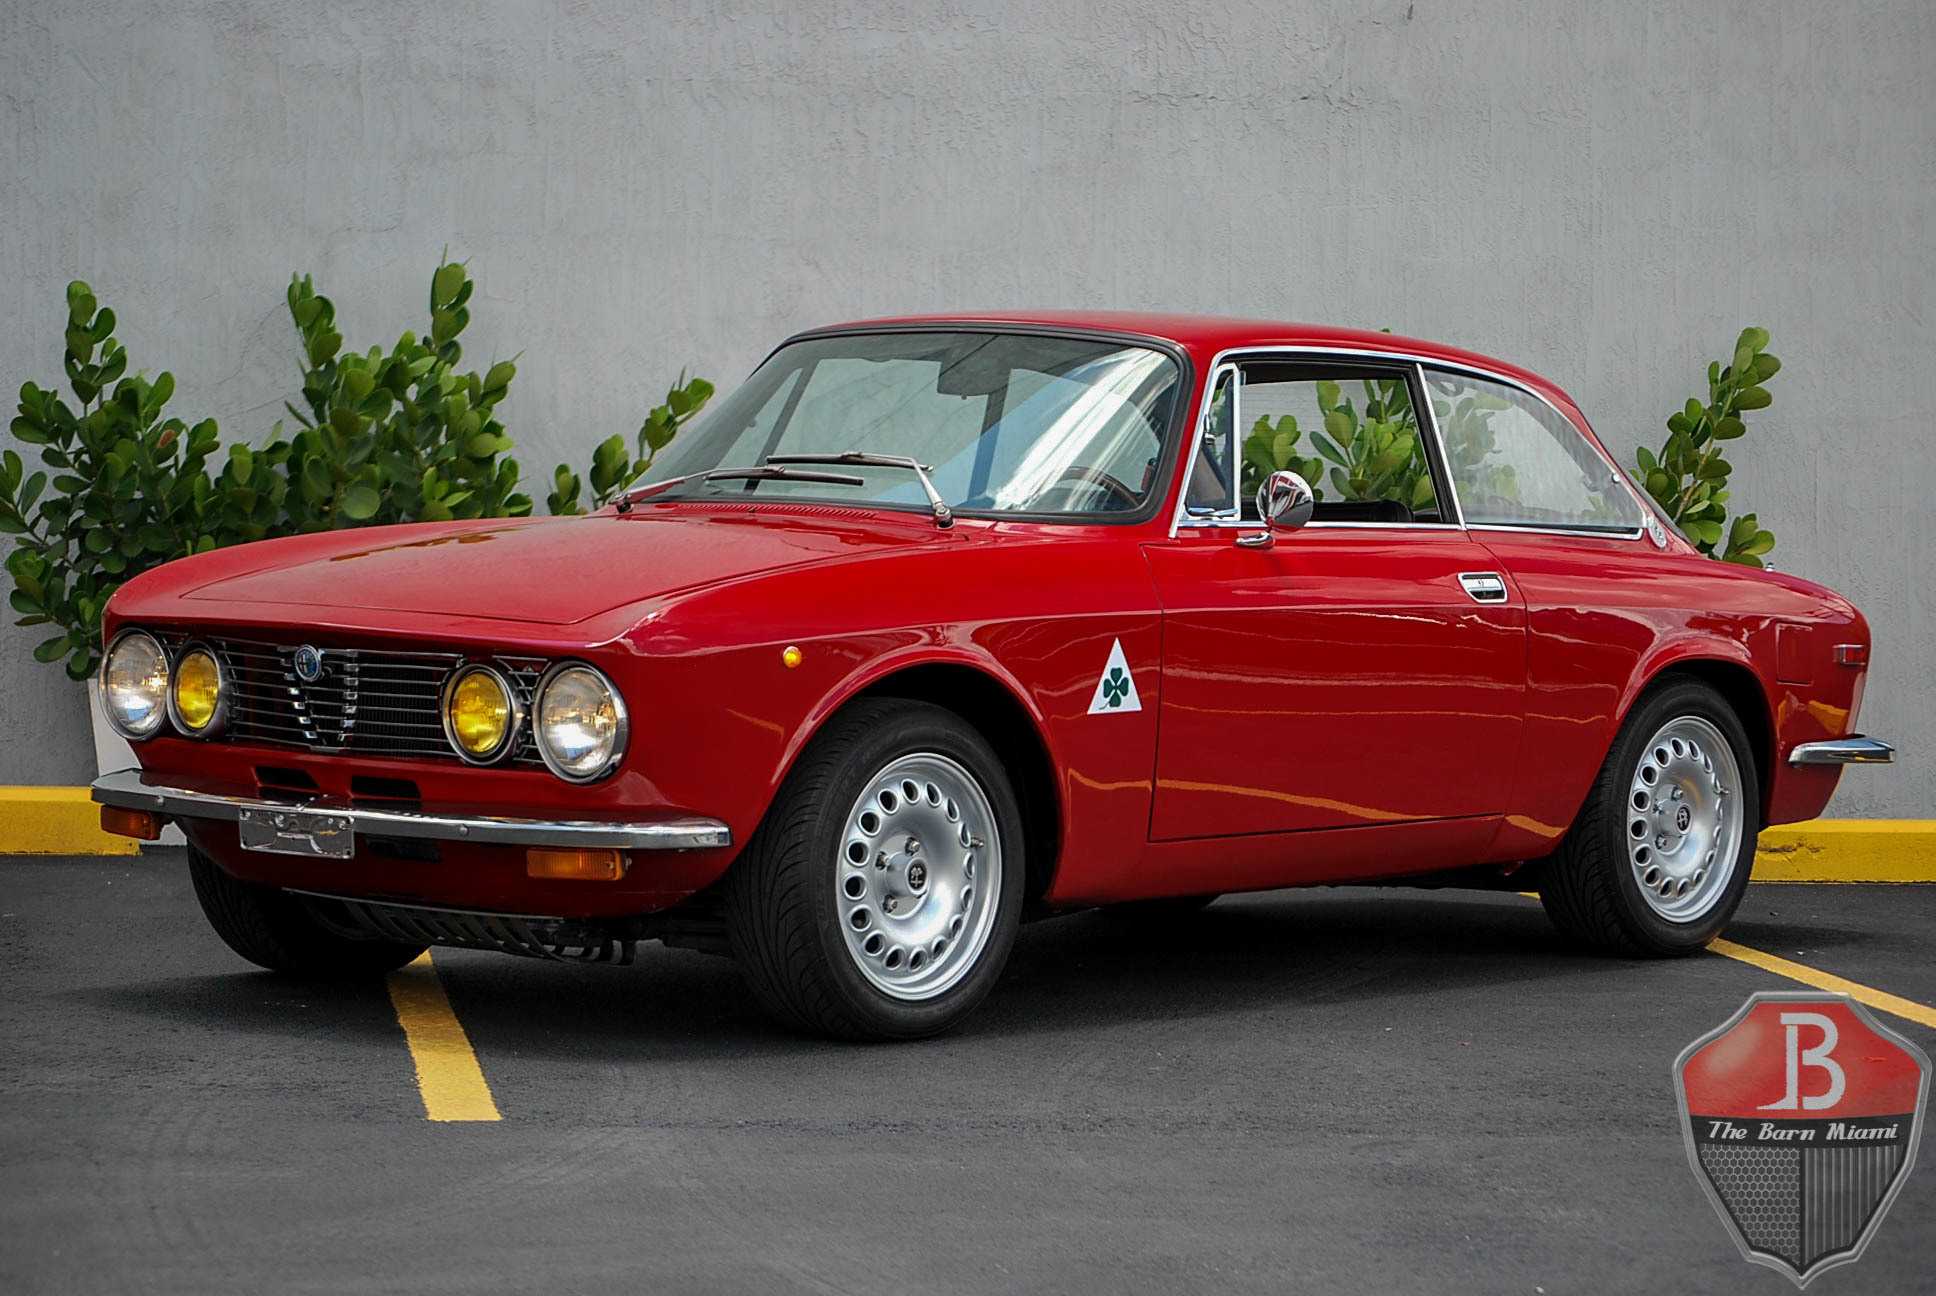 1972 alfa romeo gtv the barn miami. Black Bedroom Furniture Sets. Home Design Ideas